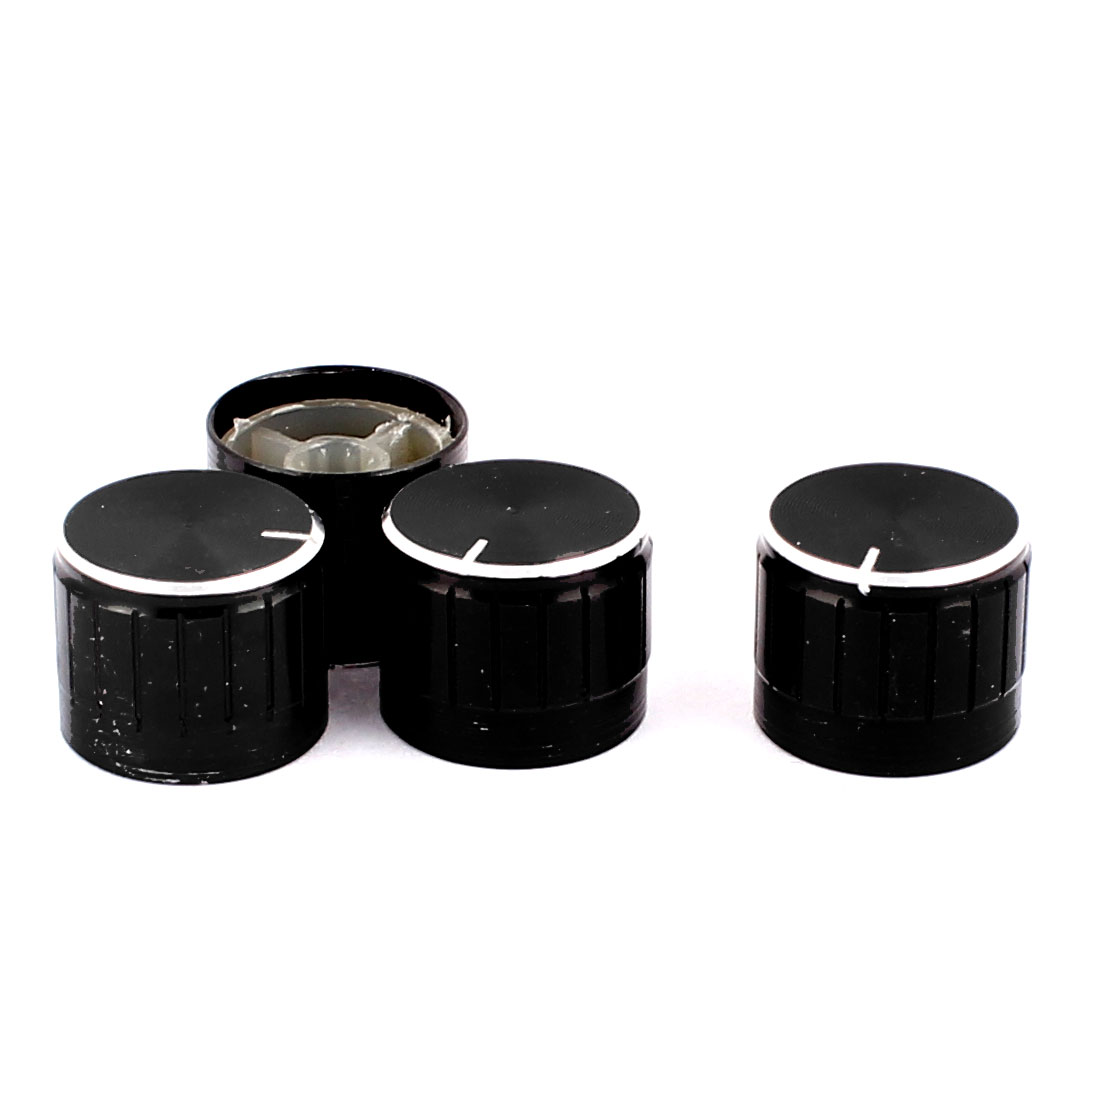 4 Pcs 21mm x 6mm Aluminium Alloy Potentiometer Control Knob Mini Cap Knurled Button Black